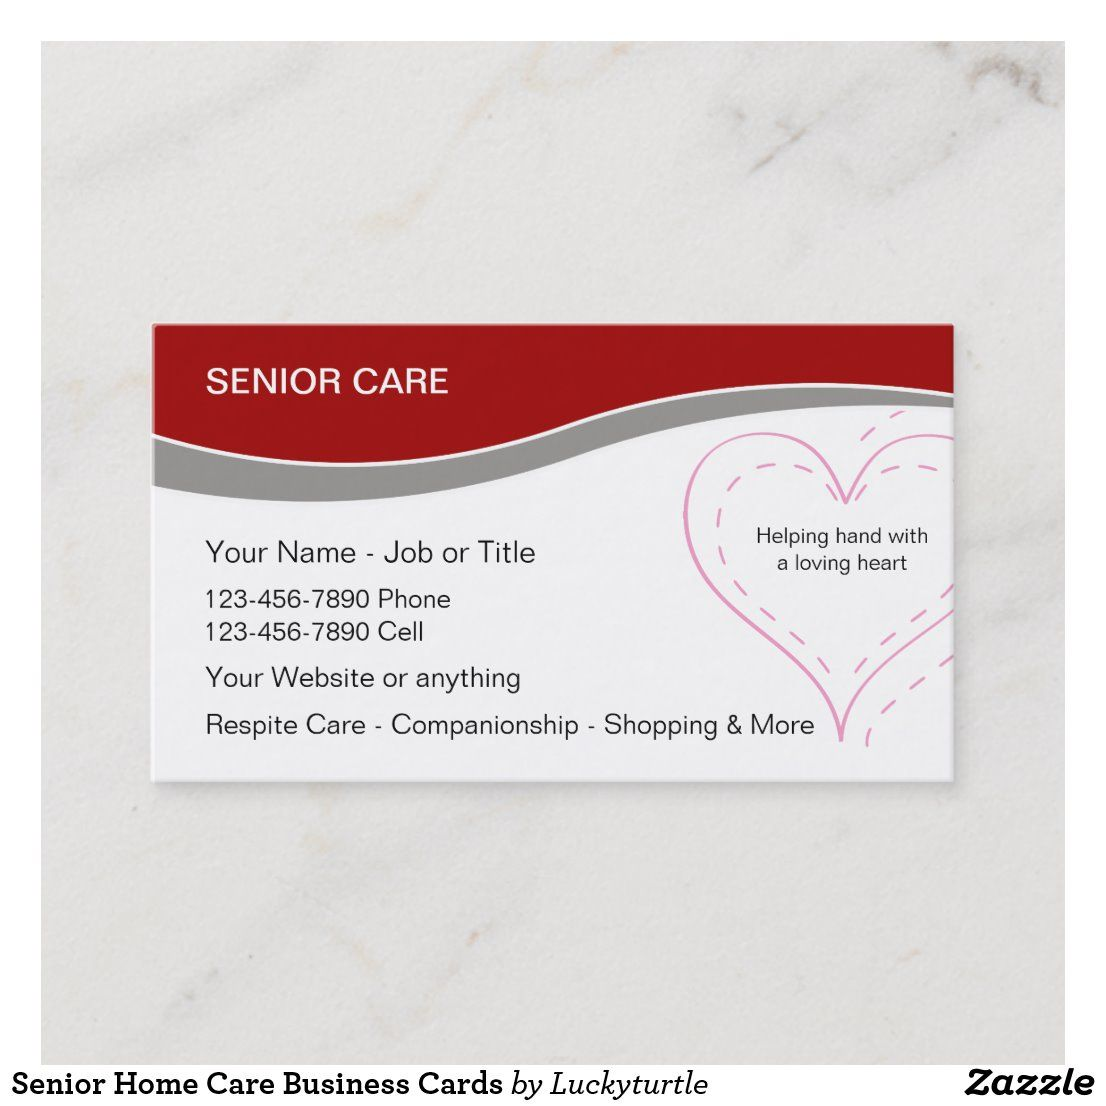 Senior Home Care Business Cards Zazzle Com Senior Home Care Home Care Home Health Care